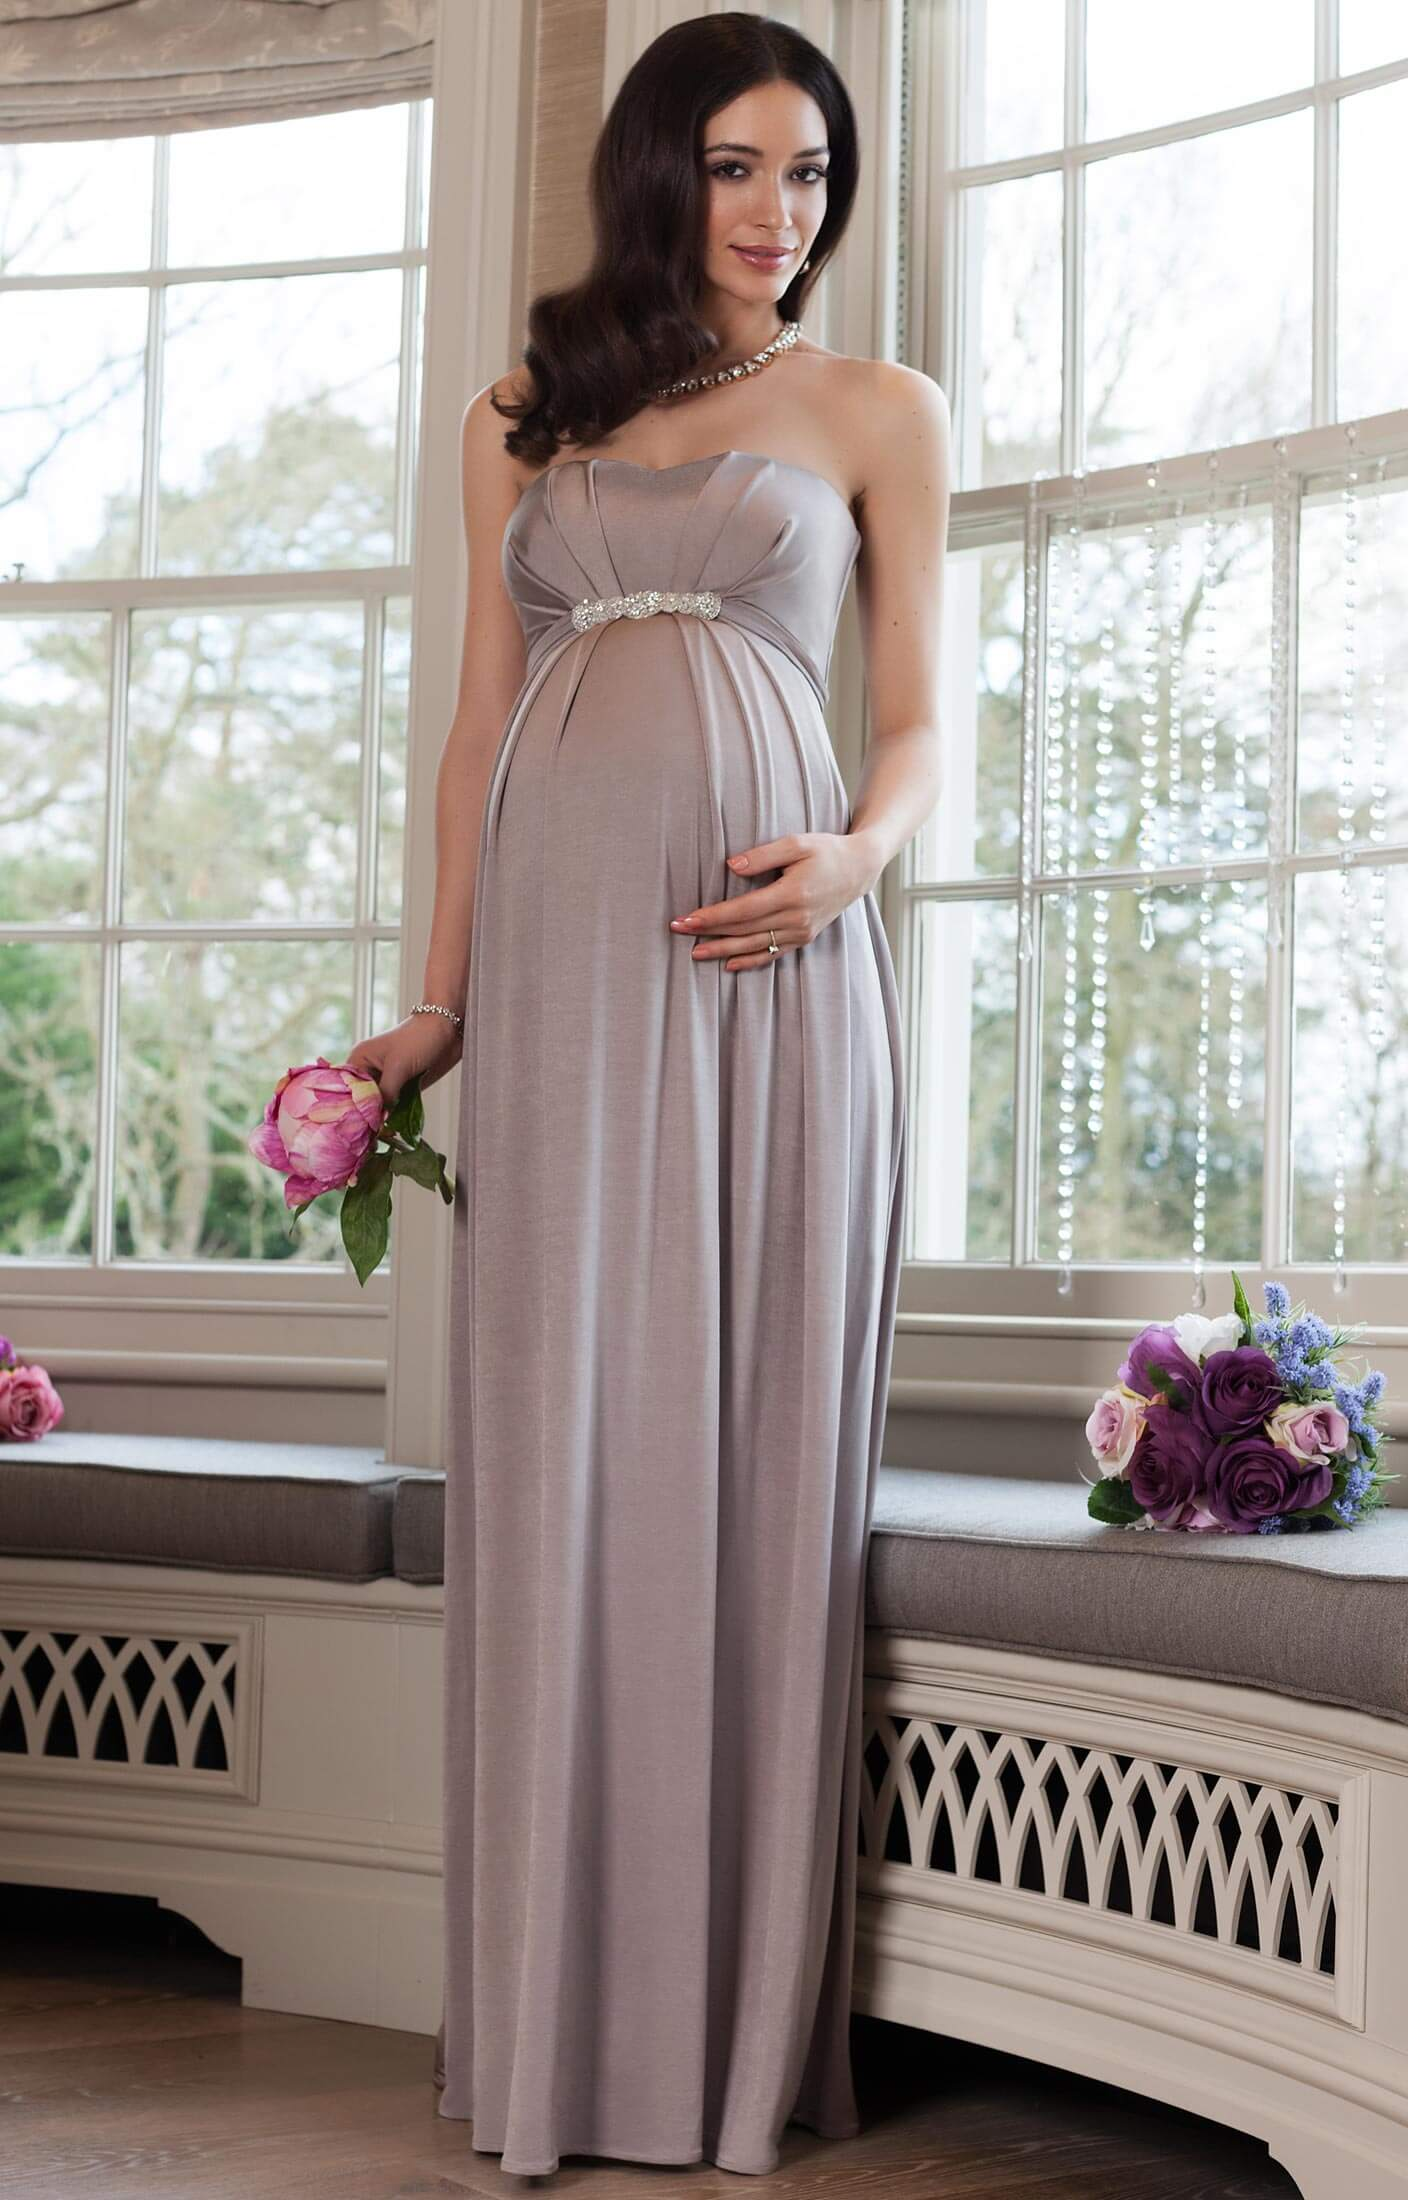 Annabella maternity gown cappuccino maternity wedding dresses annabella maternity gown cappuccino by tiffany rose ombrellifo Image collections